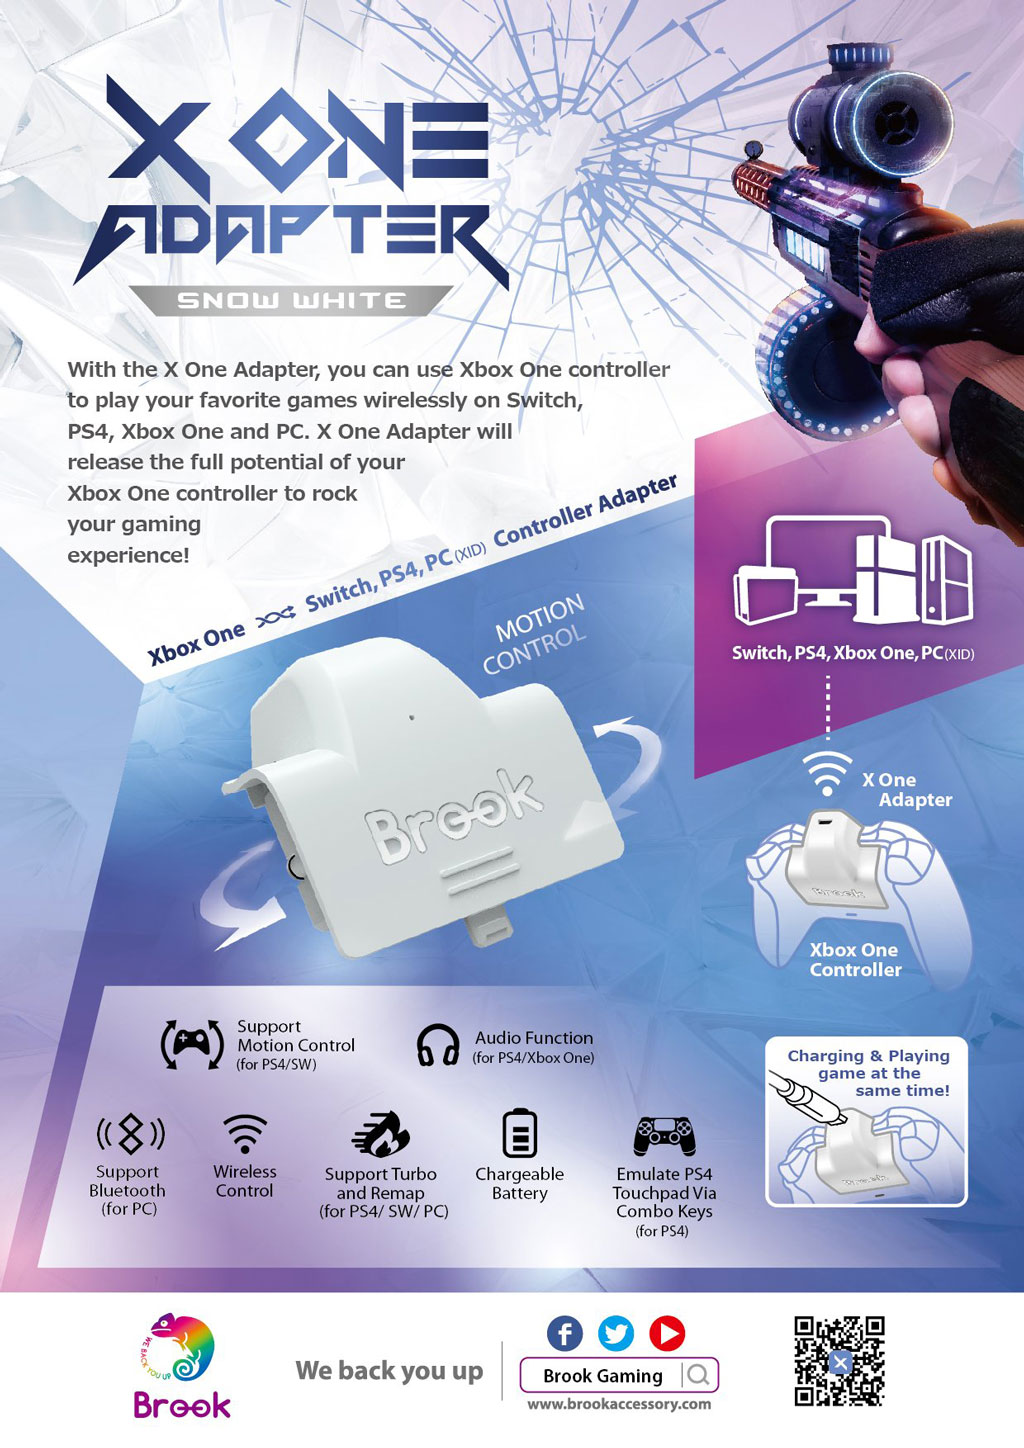 XOne Adapter promotion and feature iist